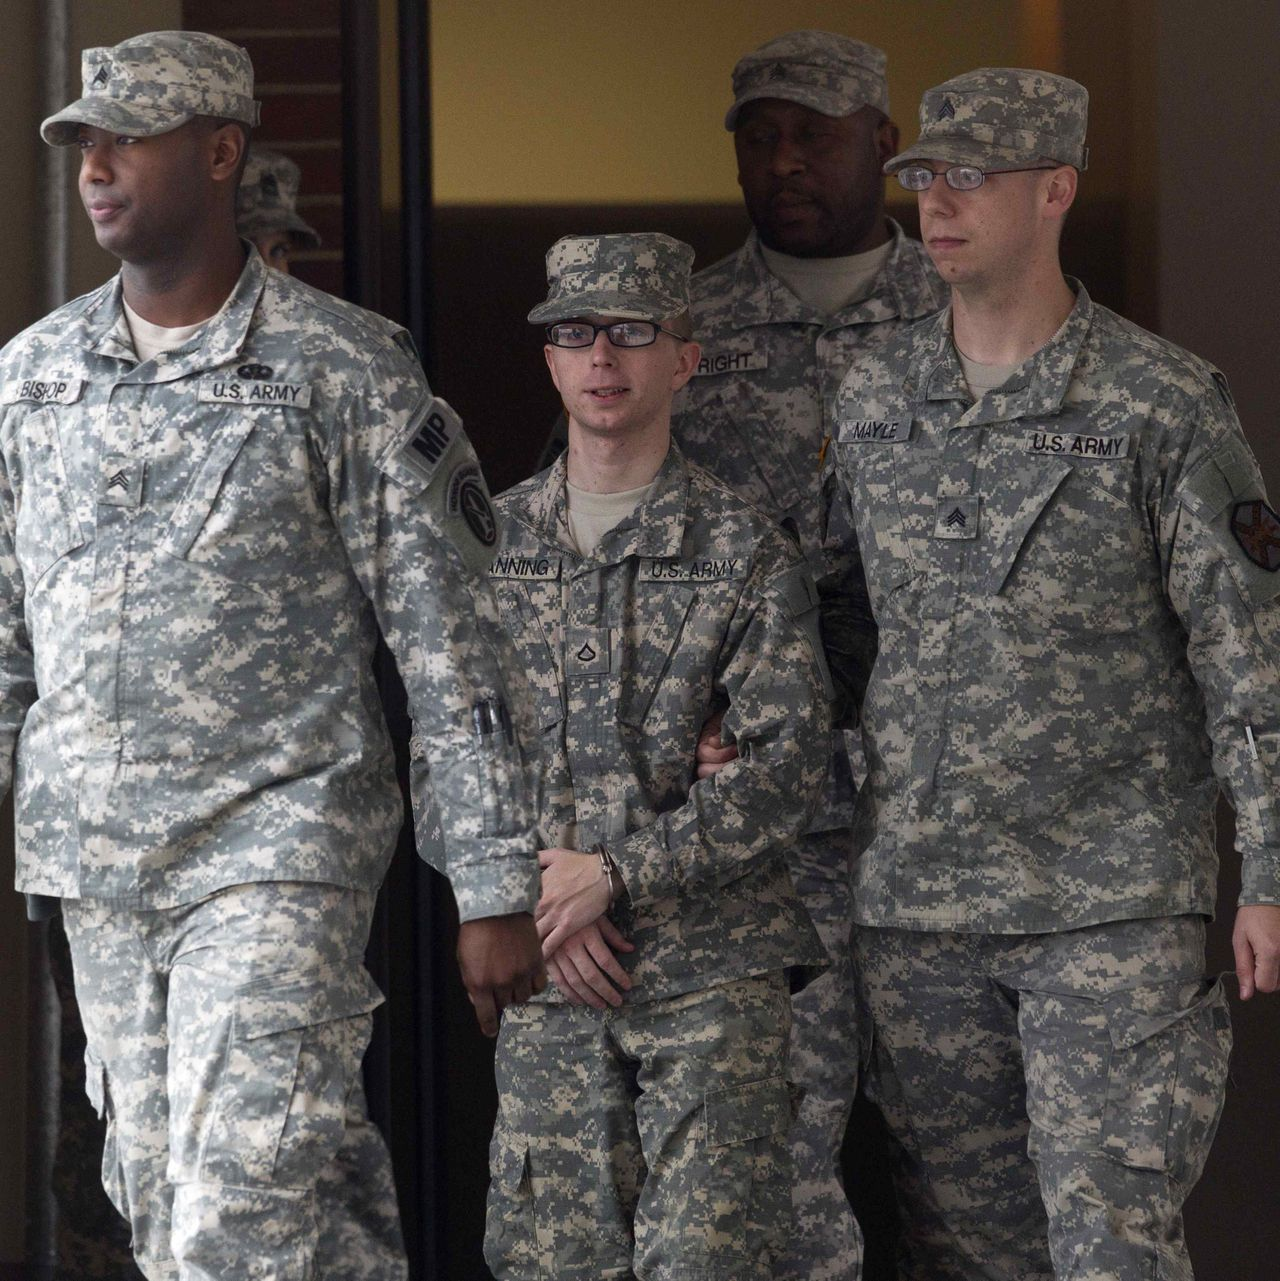 Army Pfc. Bradley Manning (C) is escorted by military police from the courthouse after the sixth day of his Article 32 hearing at Fort Meade, Maryland, December 21, 2011. The 24-year-old Manning is charged with downloading thousands of classified or confidential files from the military's Secret Internet Protocol Router Network, or SIPRNet. Those files are thought to have later appeared on WikiLeaks, a whistleblower website. REUTERS/Benjamin Myers (UNITED STATES - Tags: MILITARY CRIME LAW)